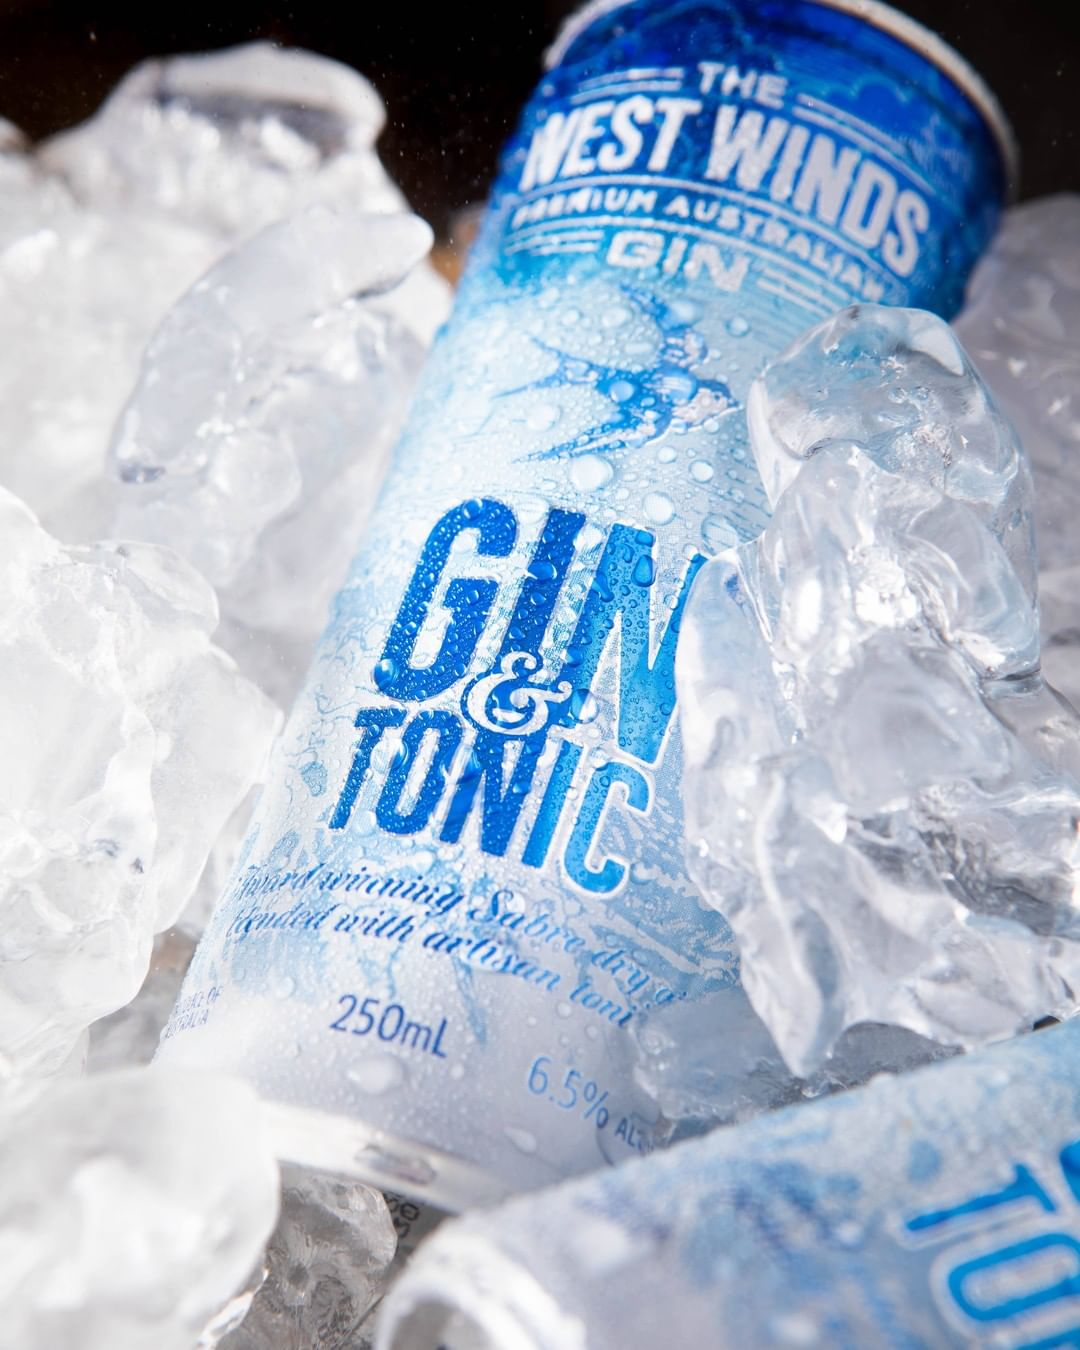 Gin & Tonic packaging for West Wind Gin